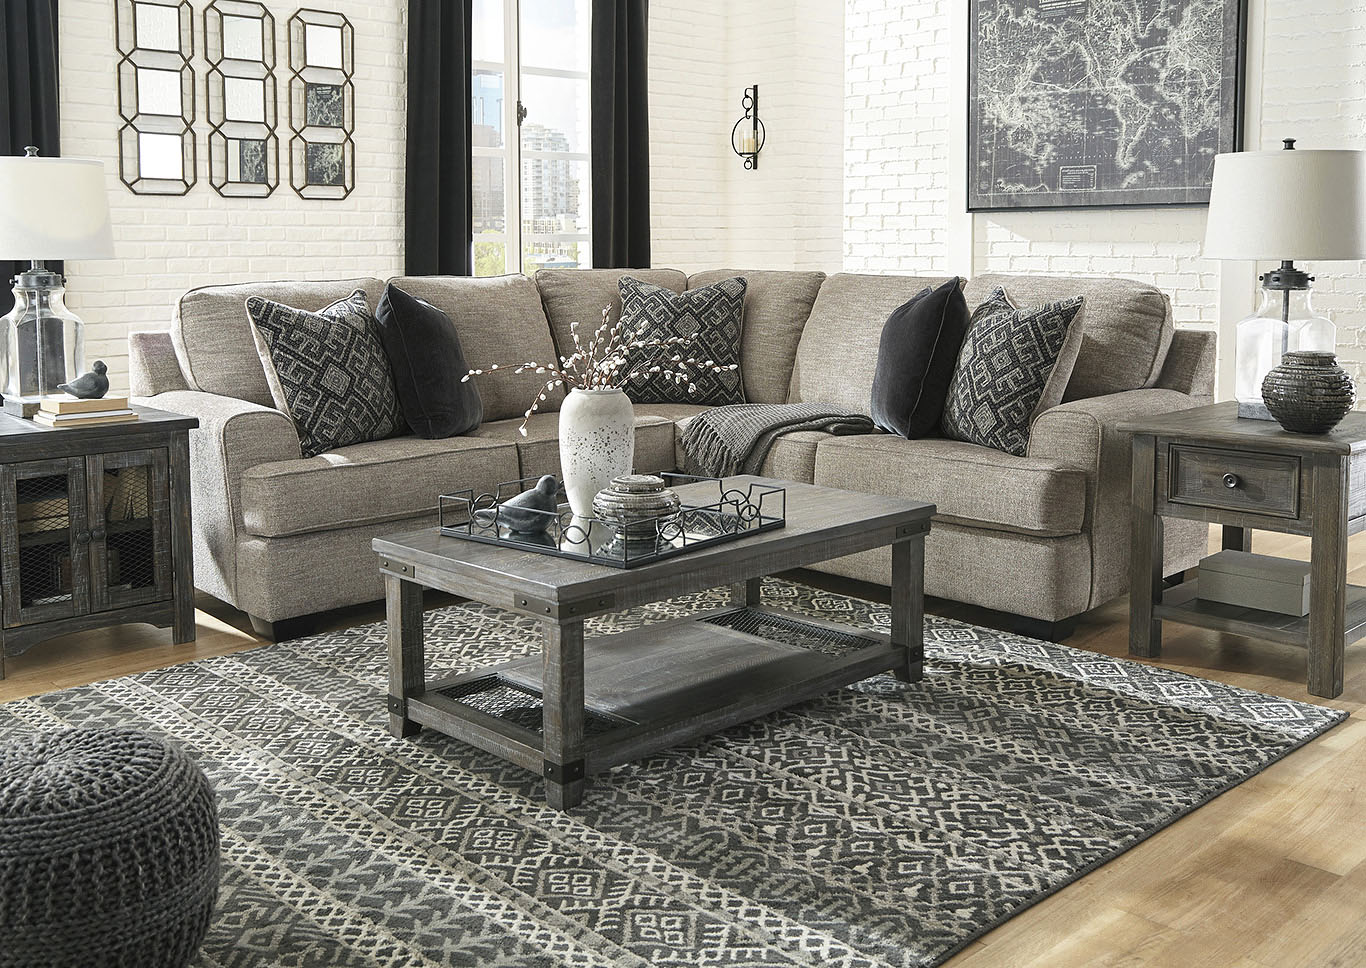 Bovarian Stone 2 Piece Sectional,Signature Design By Ashley